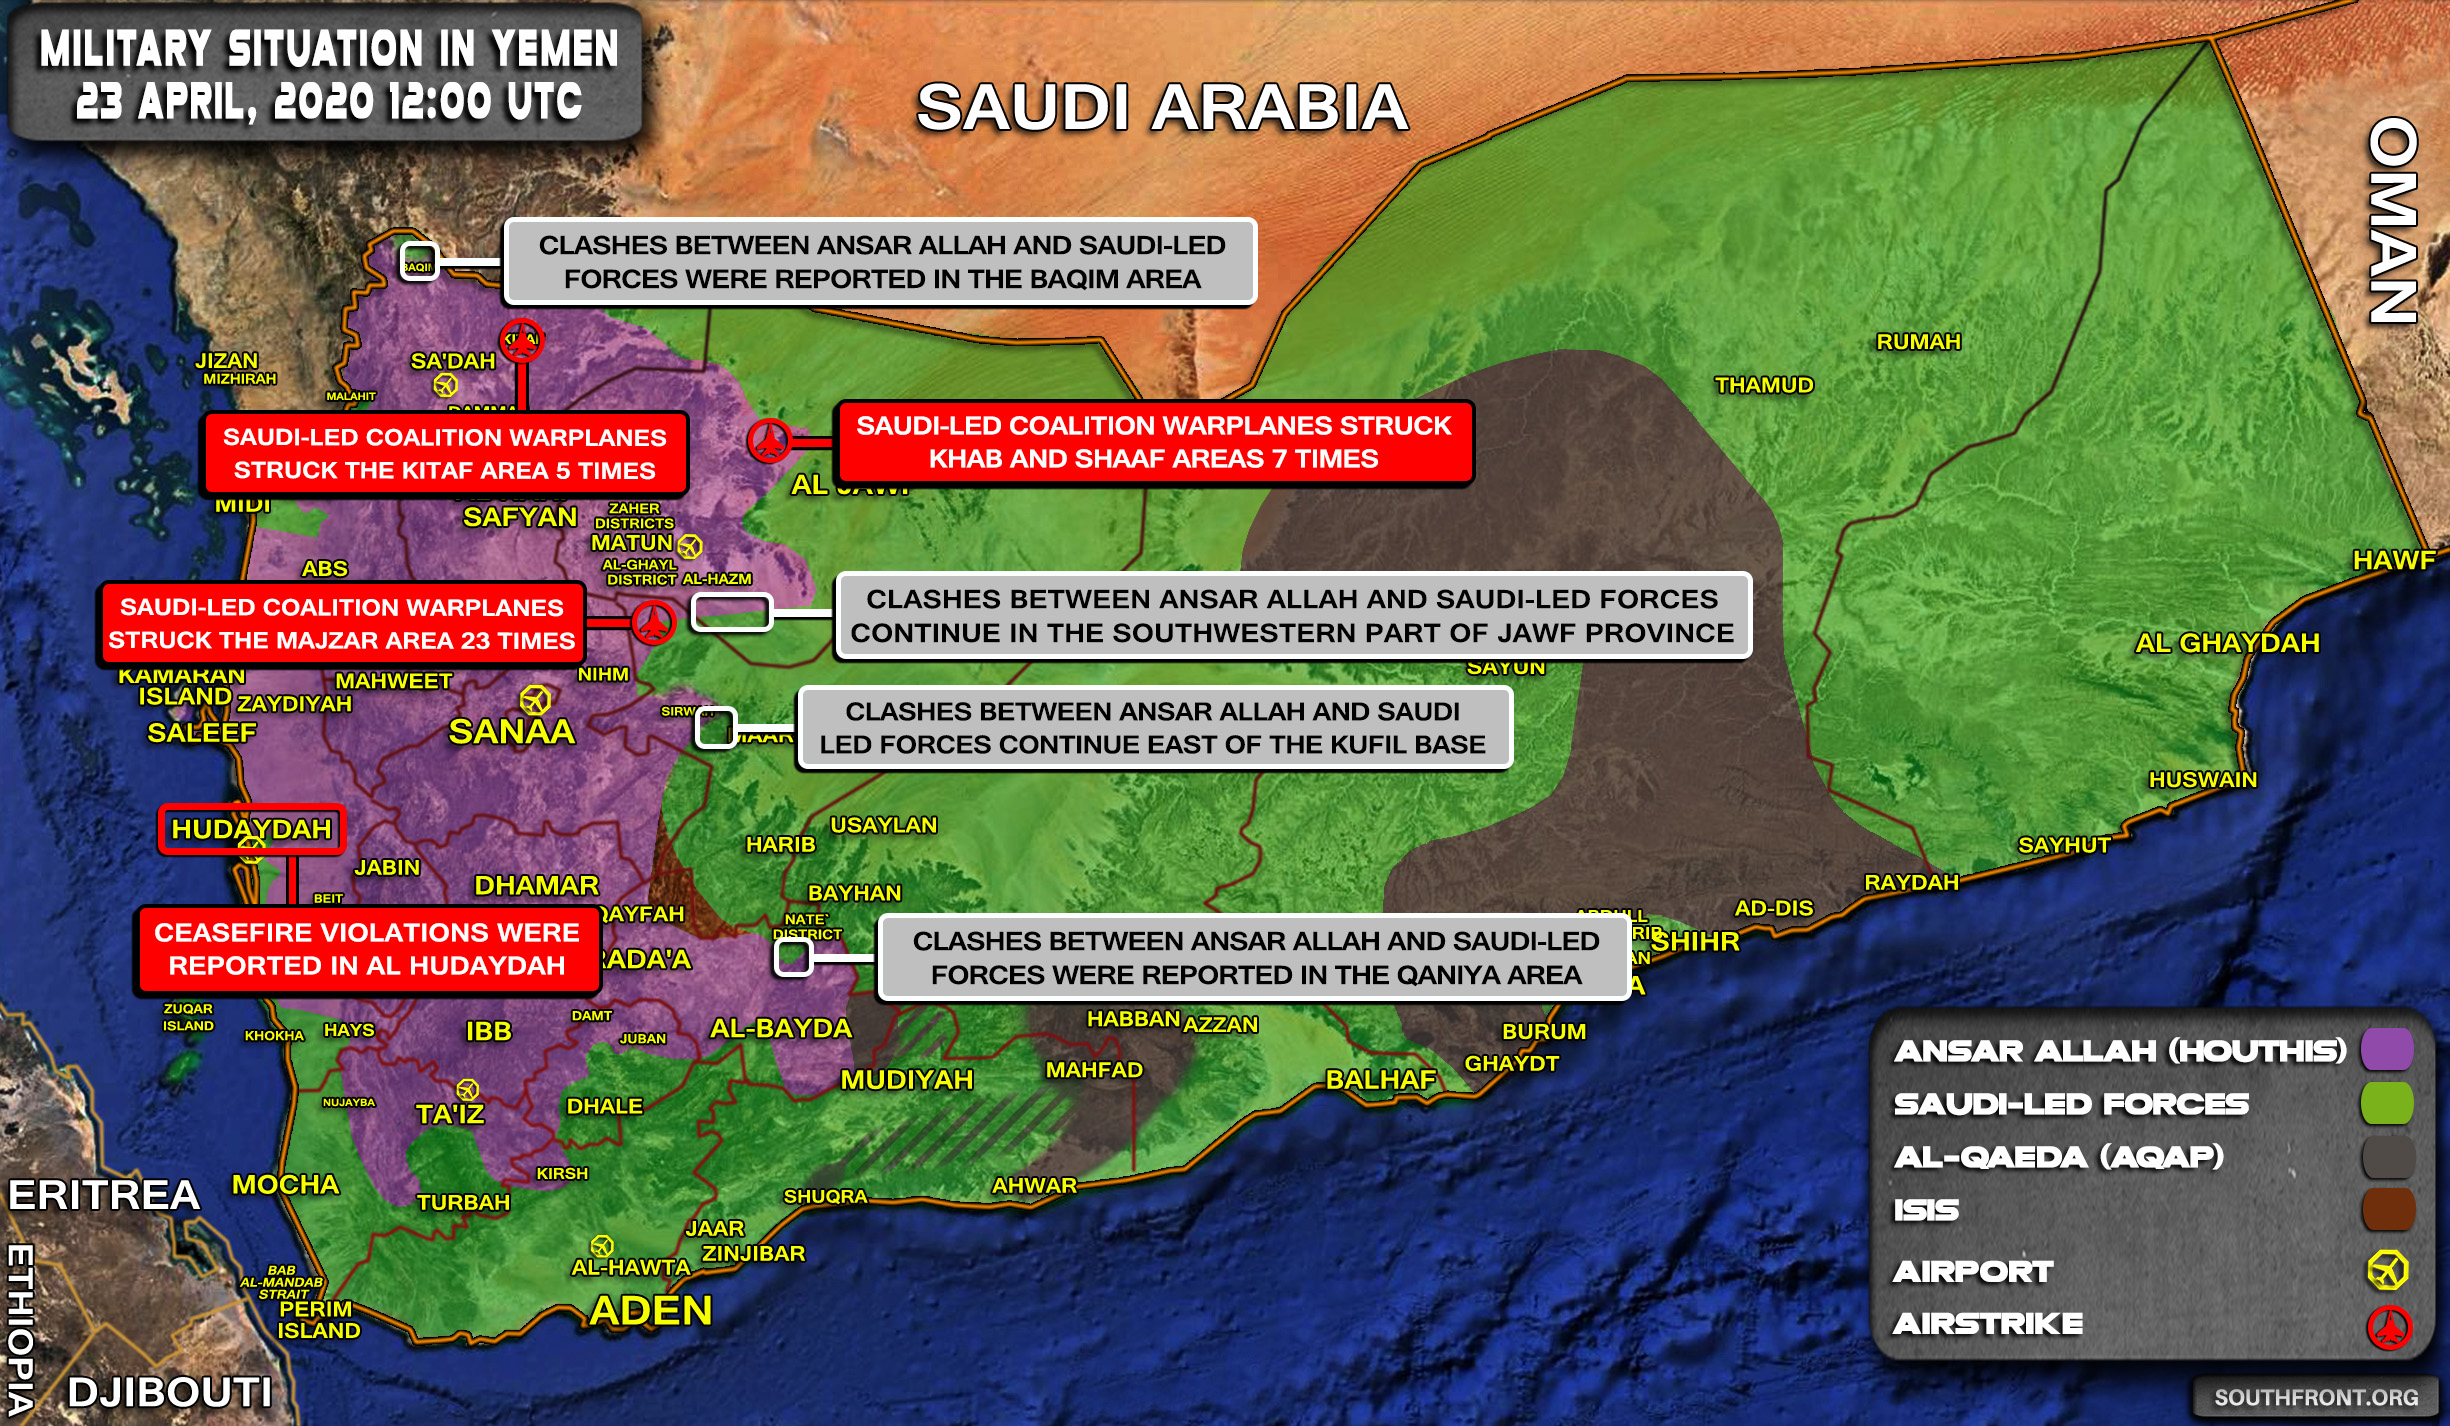 Military Situation In Yemen On April 23, 2020 (Map Update)